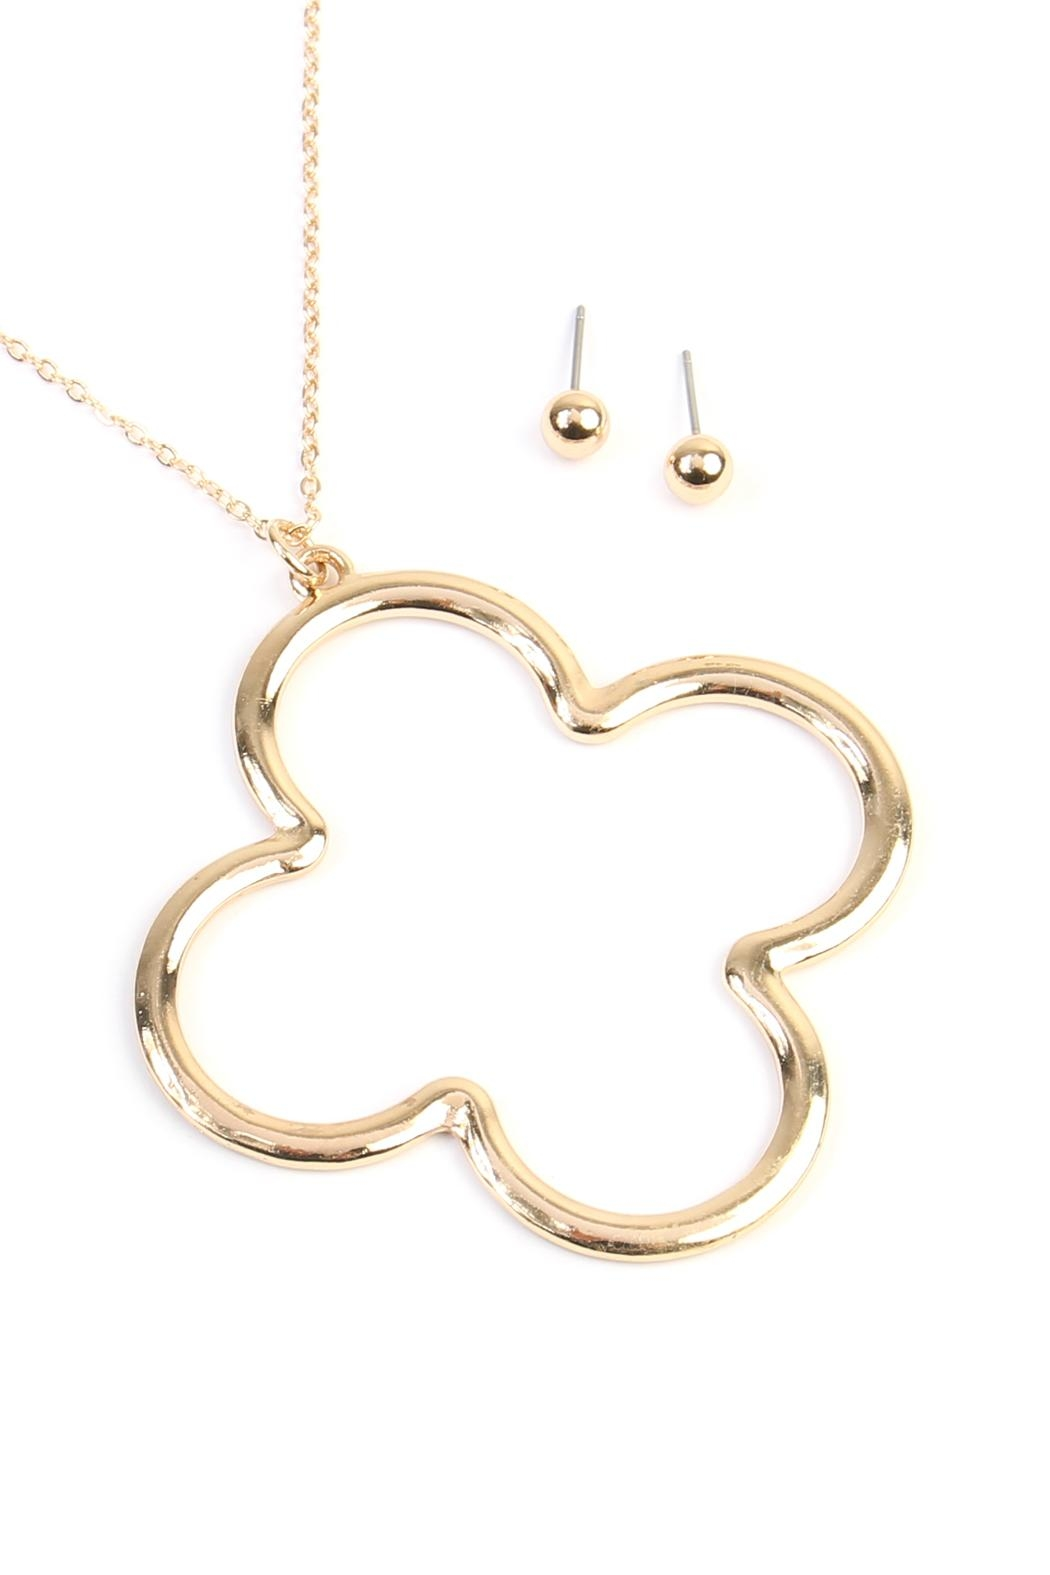 Riah fashion clover pendant necklace from california shoptiques riah fashion clover pendant necklace front full image aloadofball Image collections